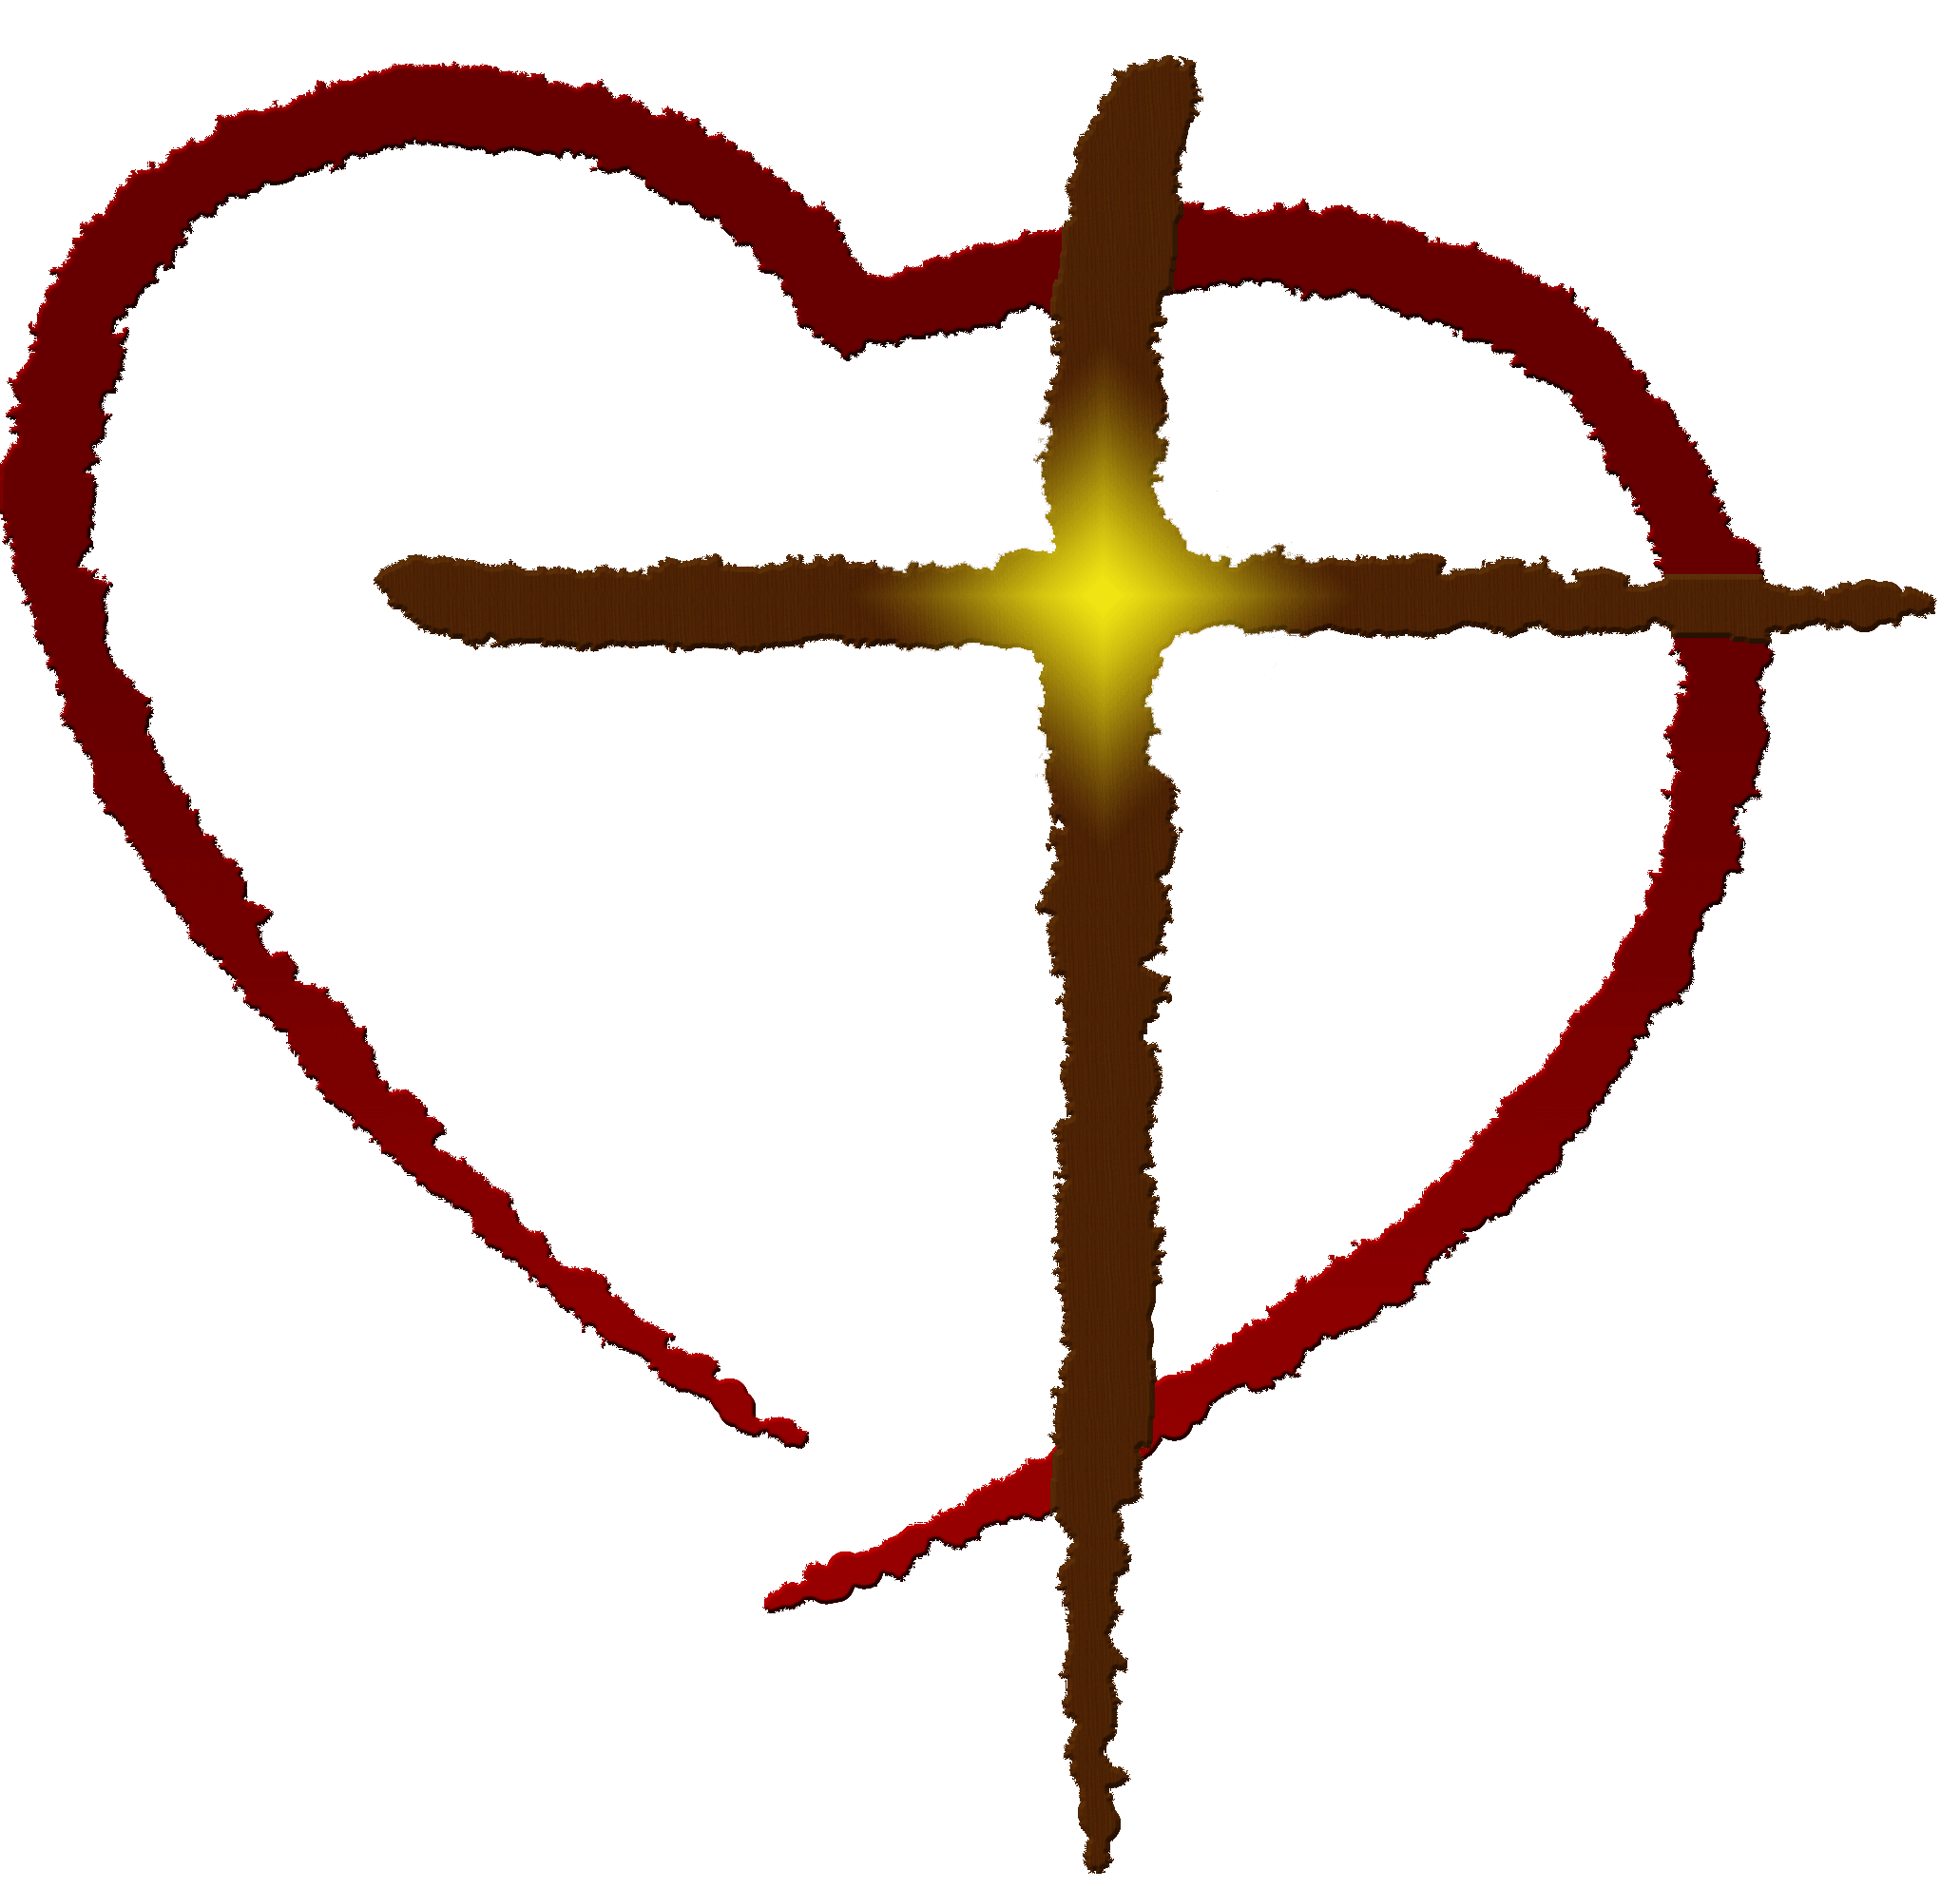 Ornate cross clipart picture freeuse library Jesus Carrying The Cross Clipart at GetDrawings.com | Free for ... picture freeuse library